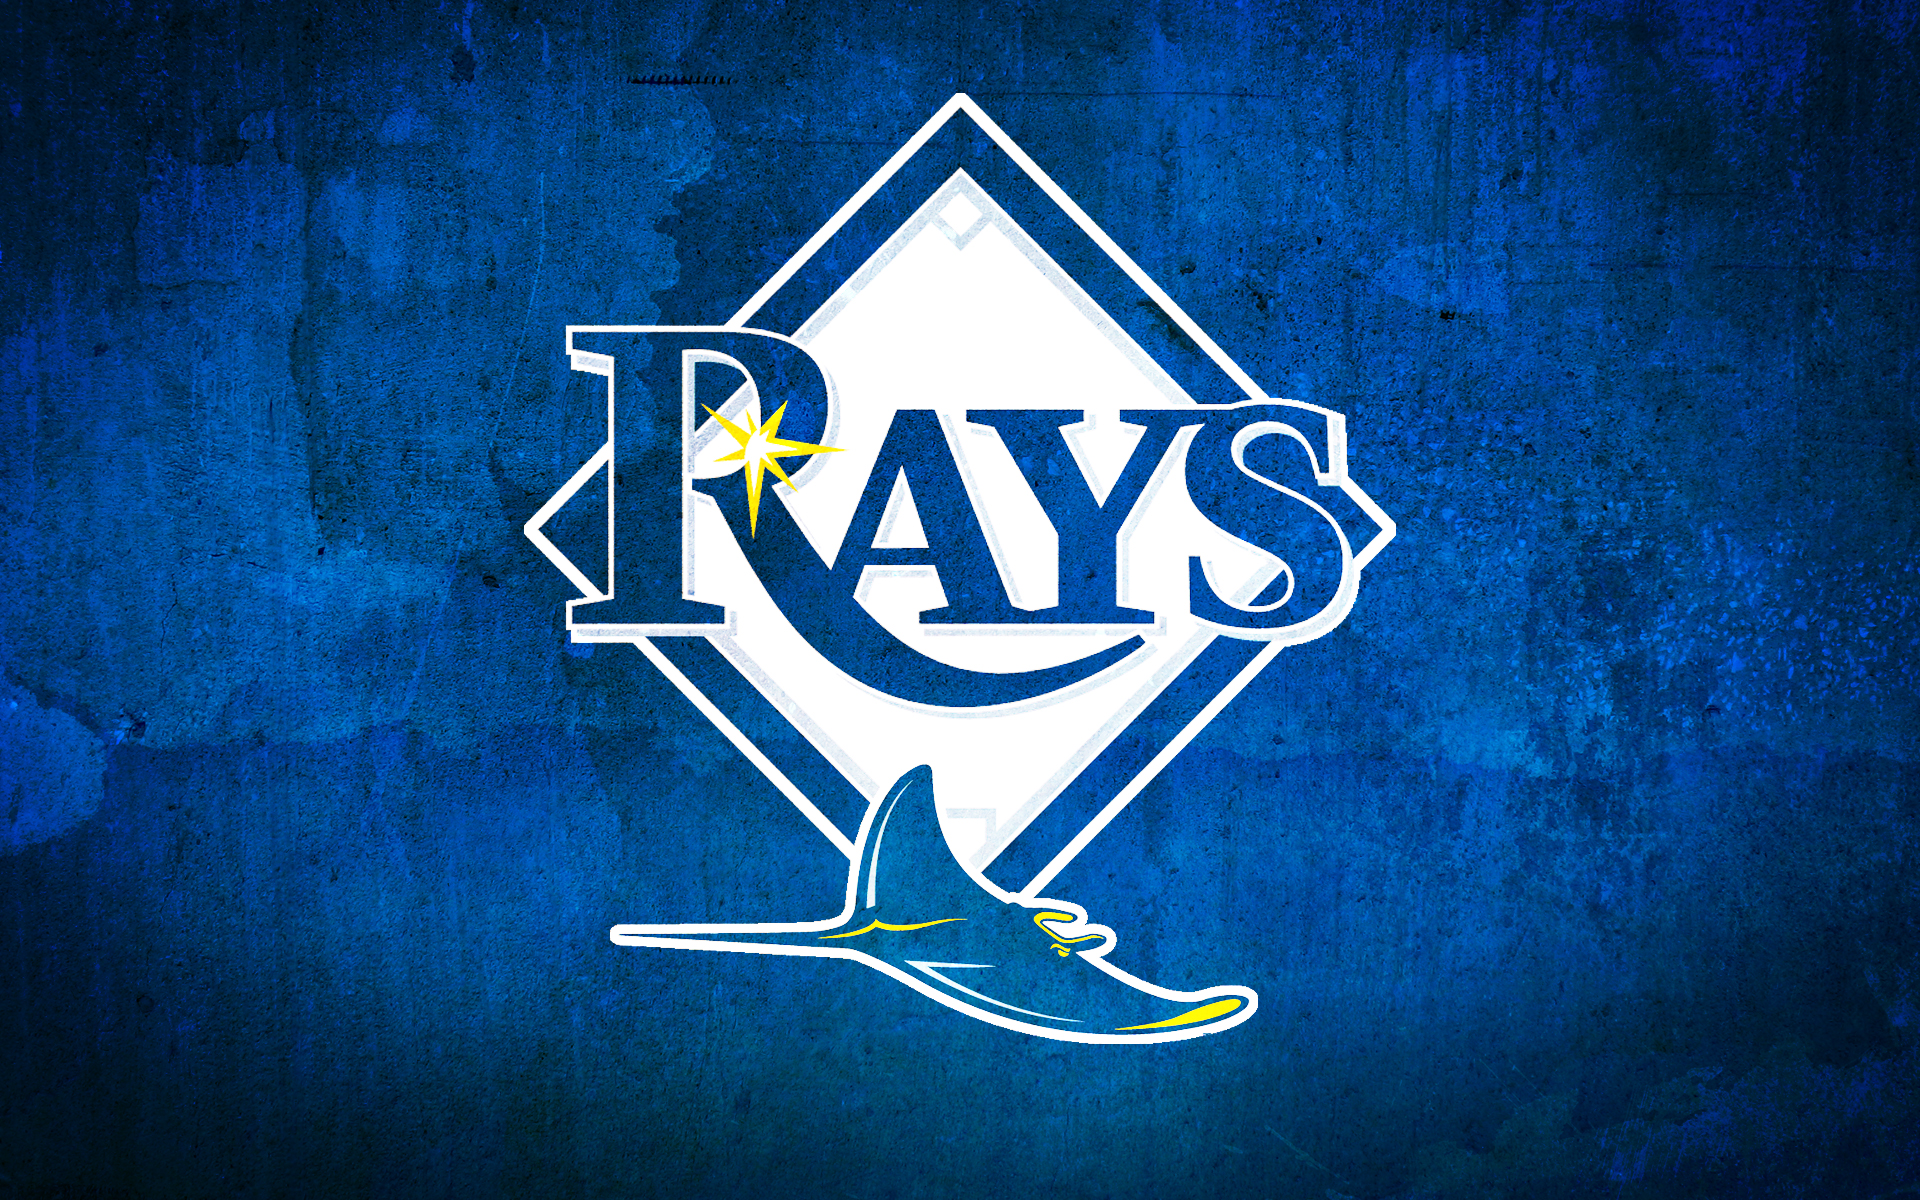 Tampa Bay Rays Wallpaper